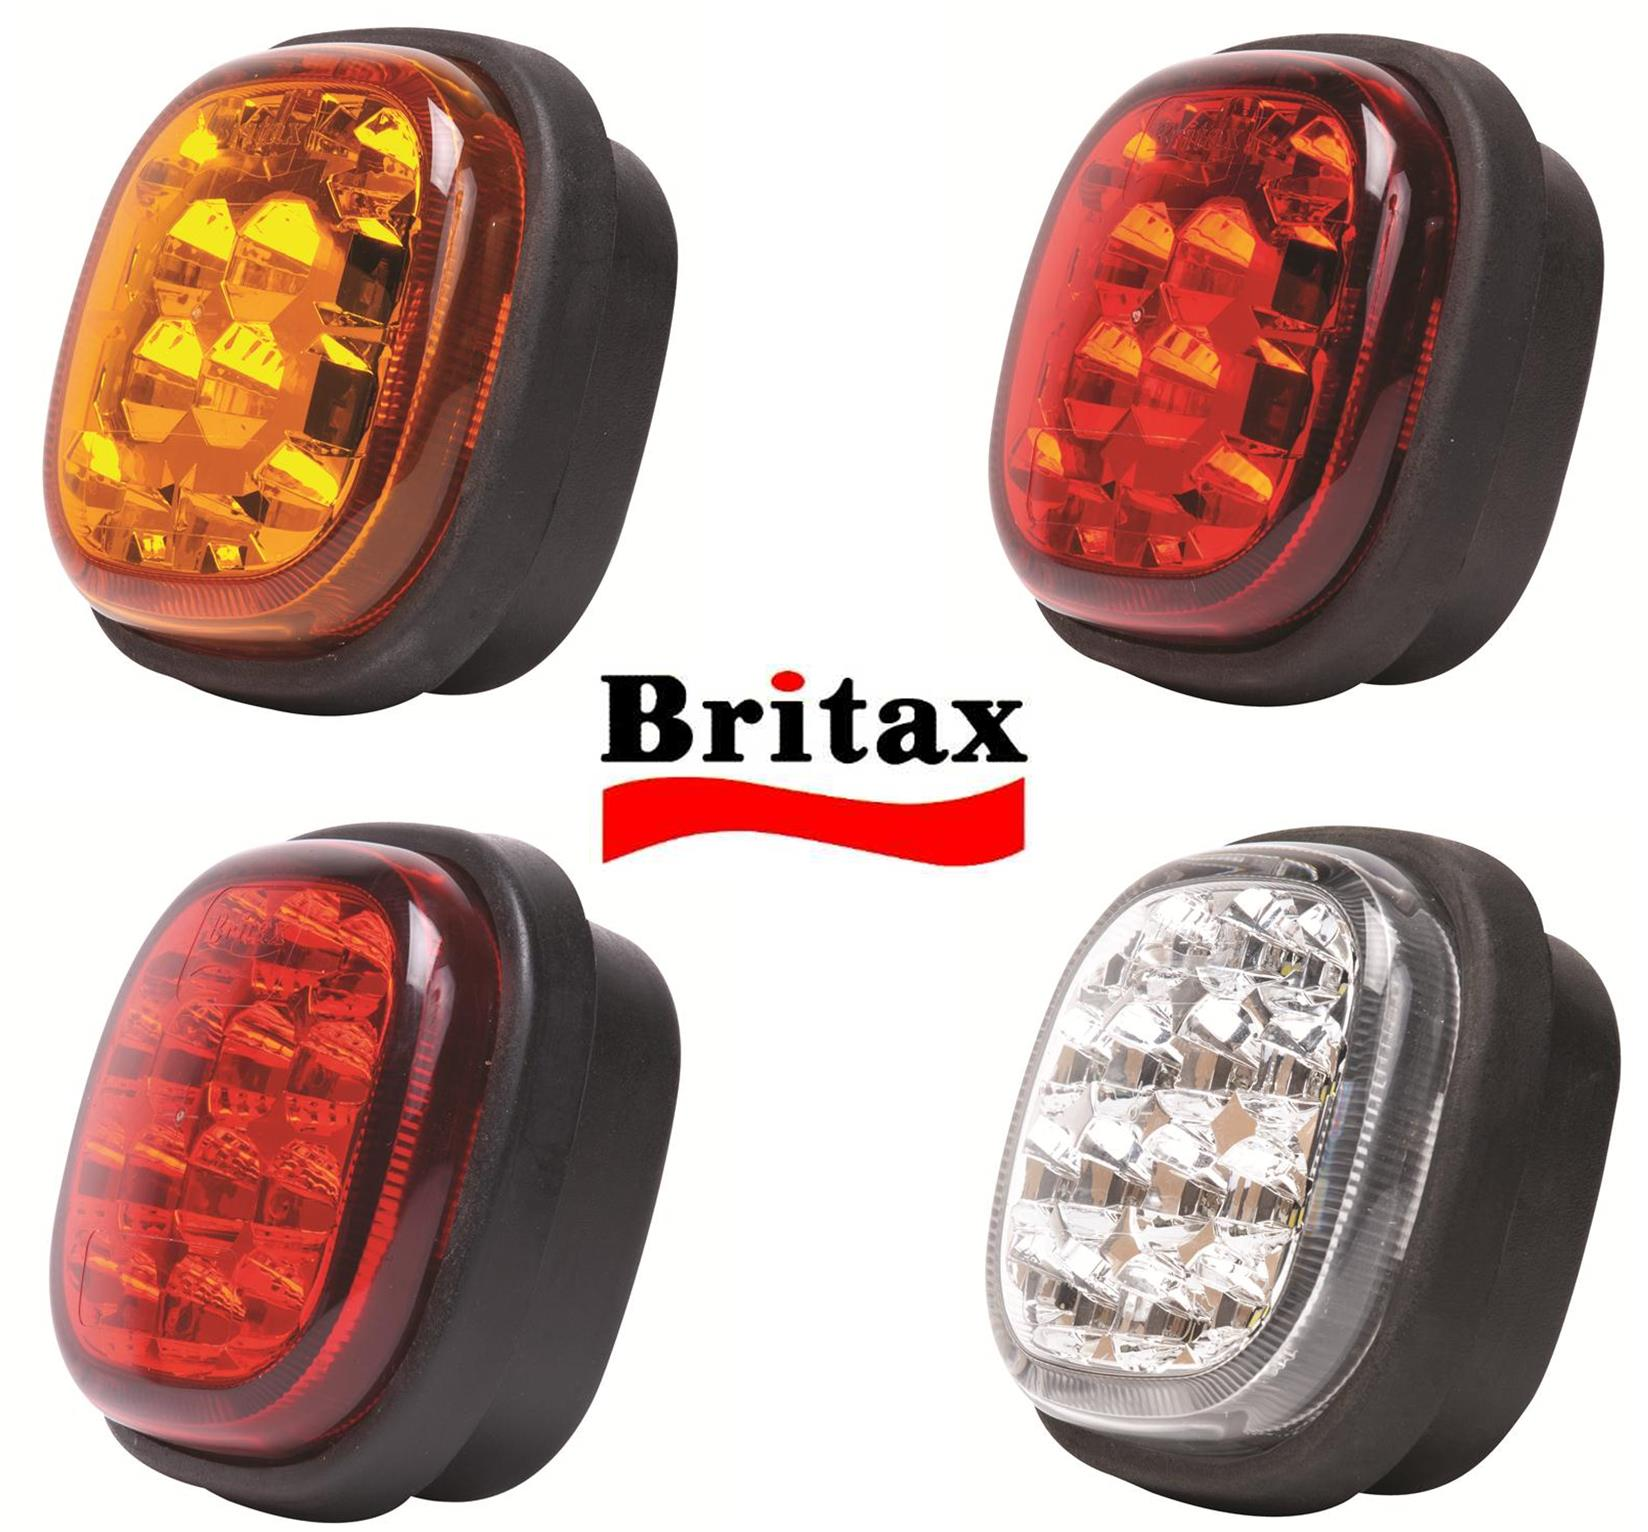 Britax L11 LED rear lamps